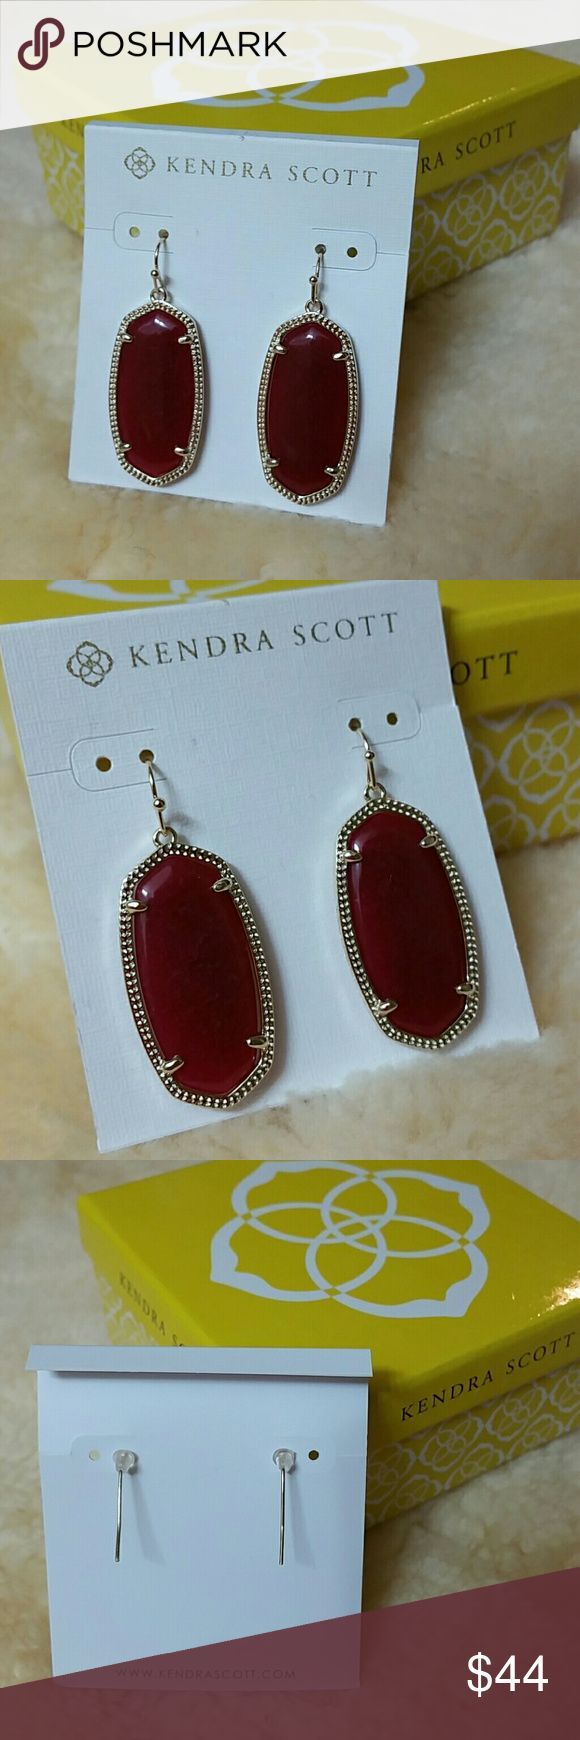 """Kendra Scott Elle earrings Gold + Maroon Jade Kendra Scott Elle earrings Gold + Maroon Jade Approx 1/2"""" drop + 1.5"""" setting and stone, overall 2"""" long Brand new and unused with earring card Does not come with dust bag or box  Stock photo showing earrings in black is for size comparison between Danielle and Elle Kendra Scott Jewelry Earrings"""